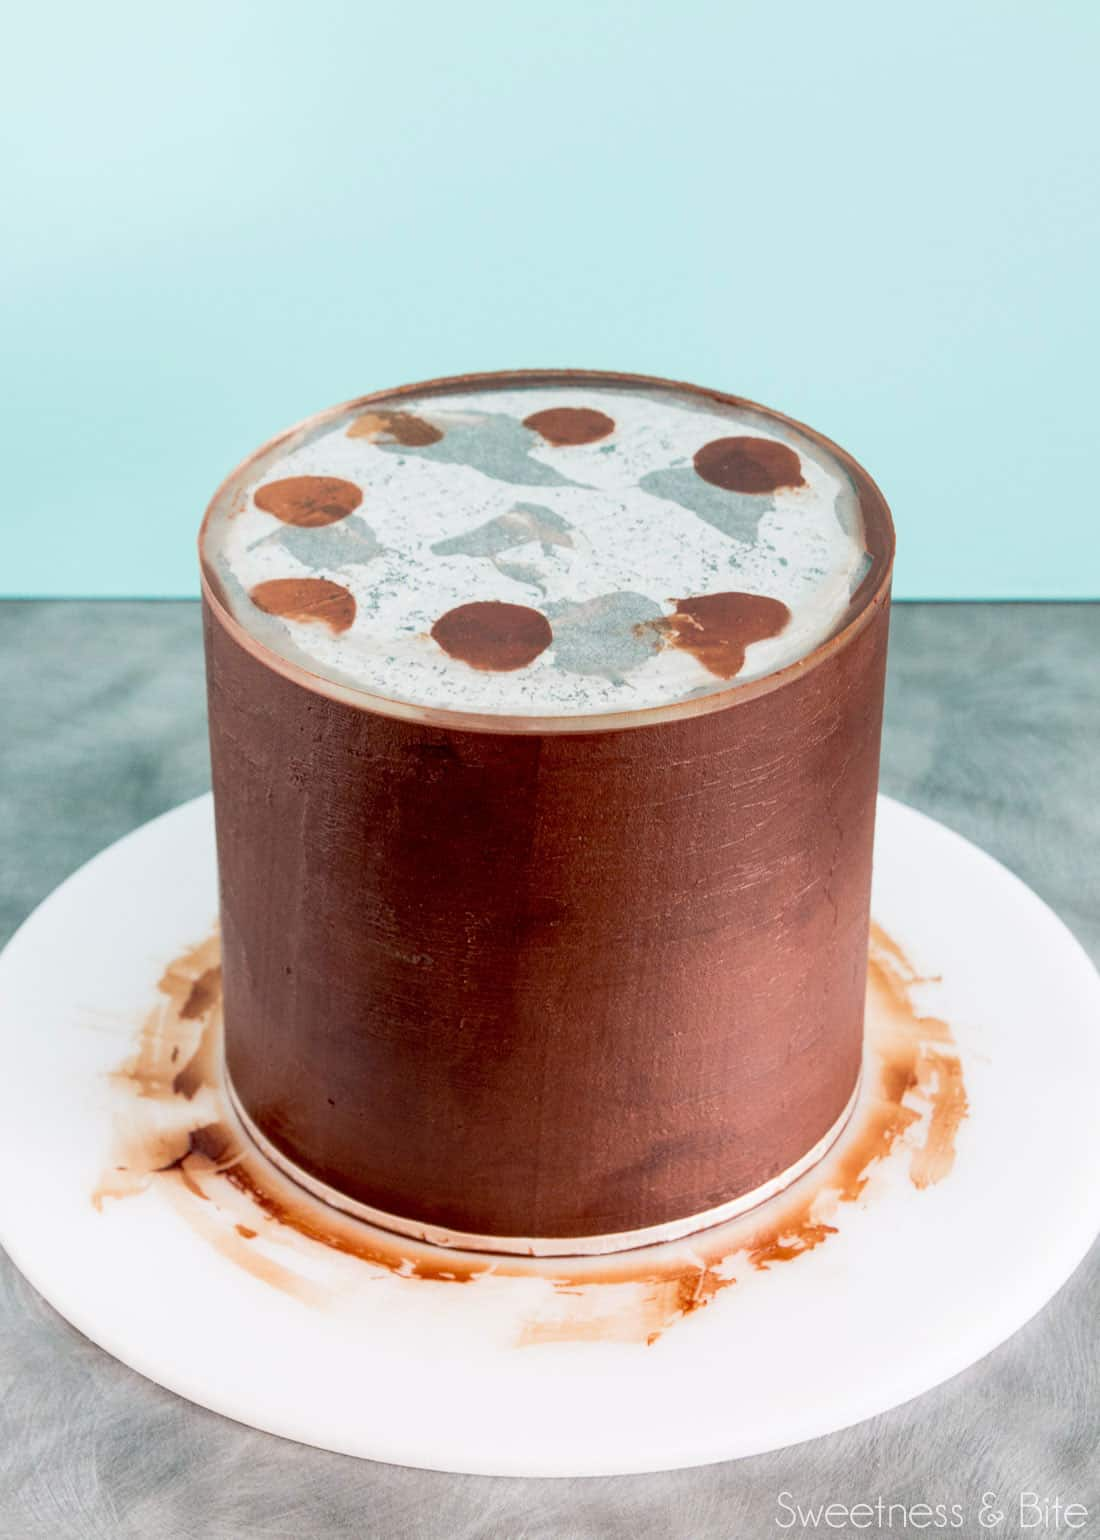 A cake being covered in ganache using an acrylic ganache board.